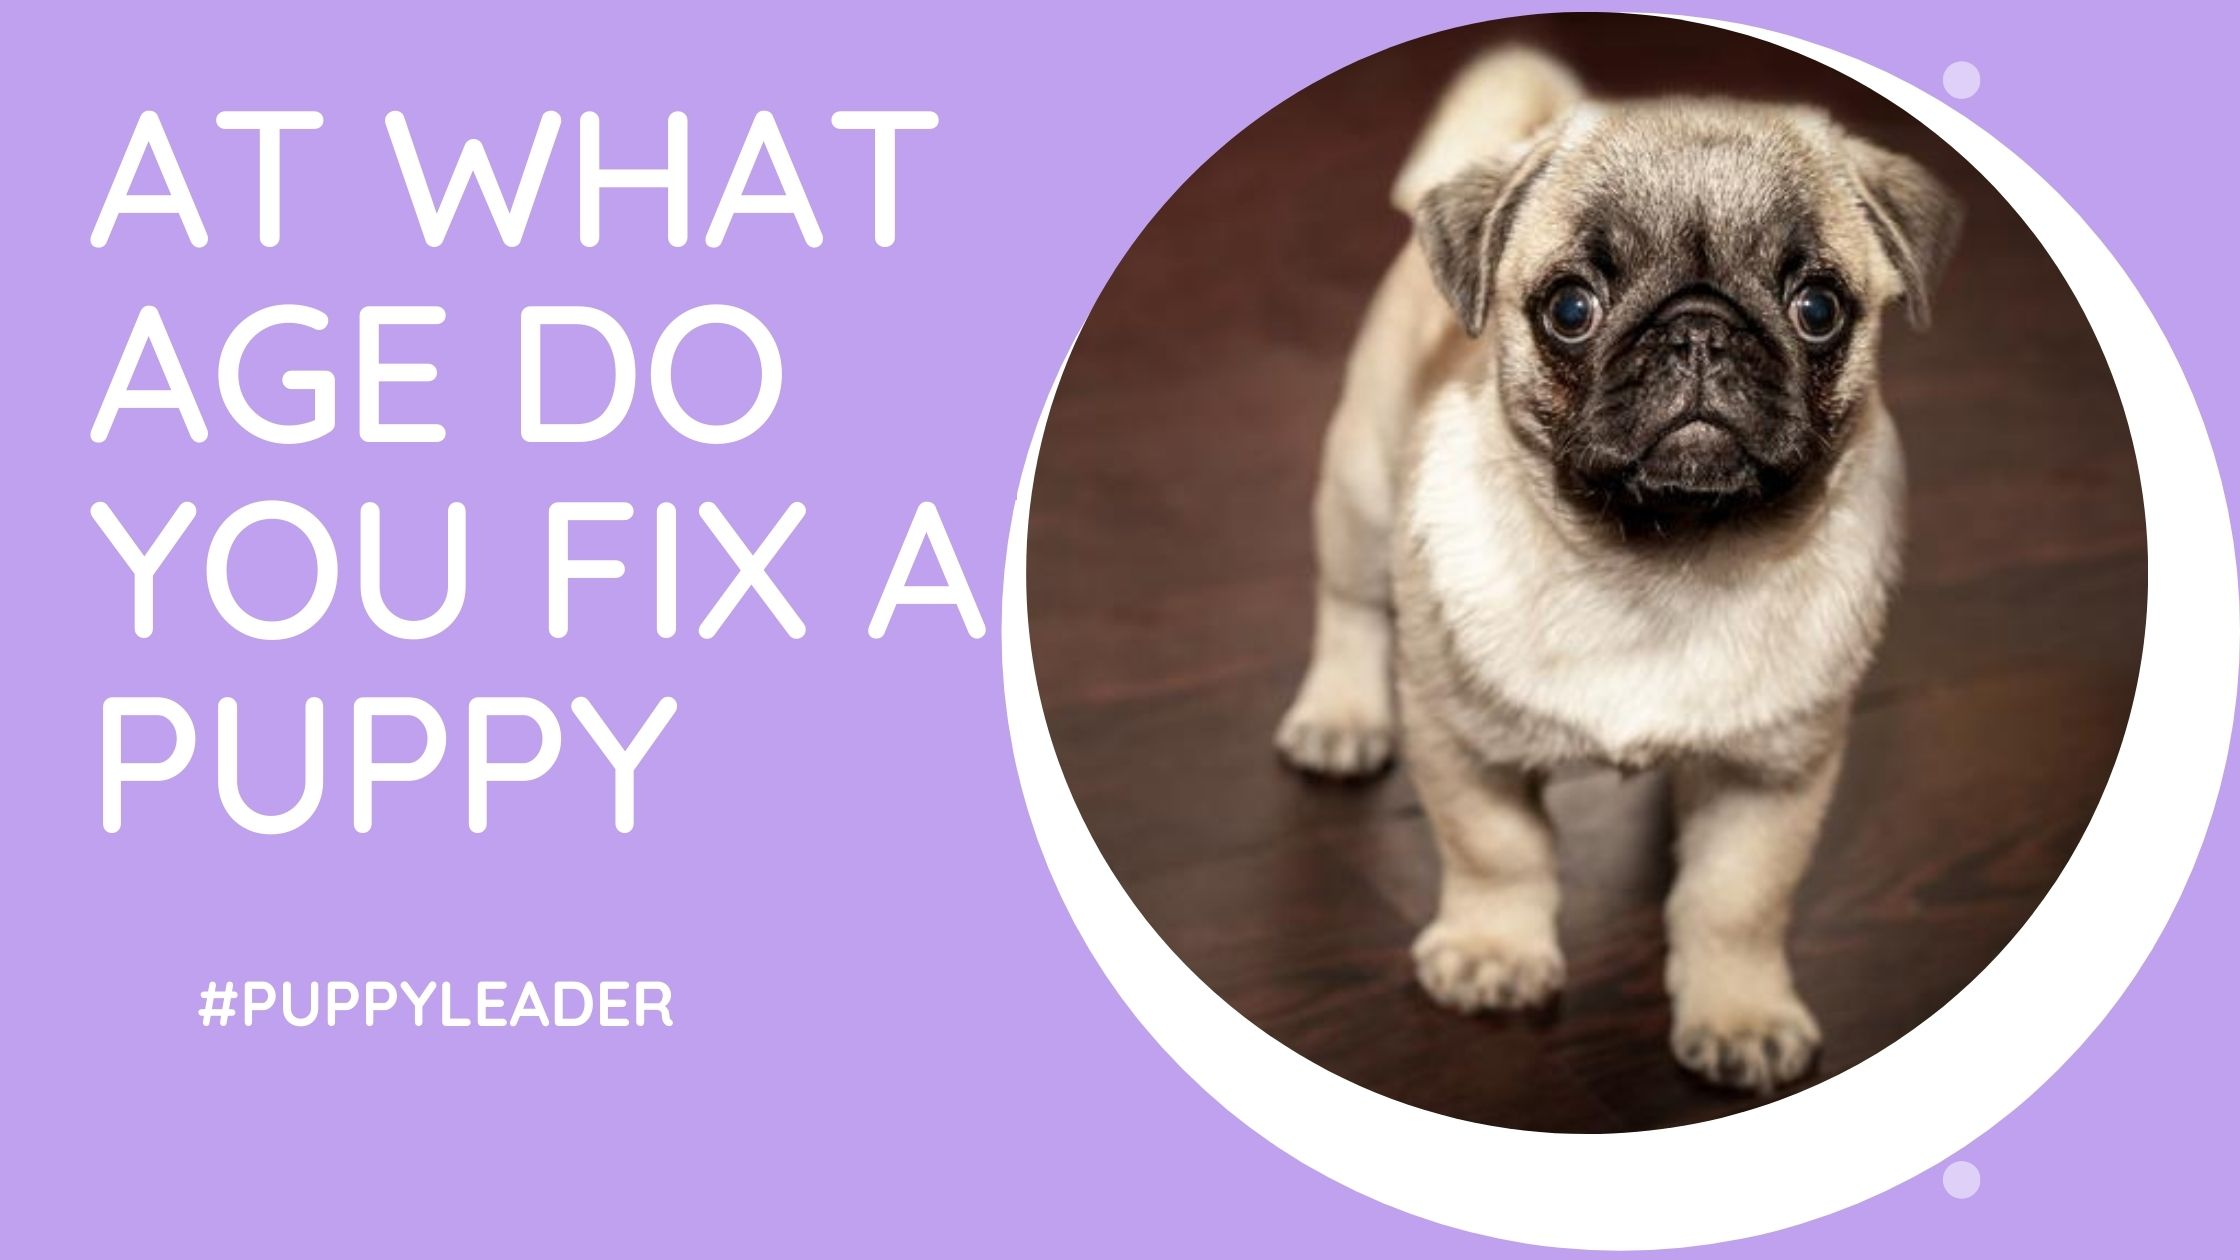 at what age do you fix a puppy